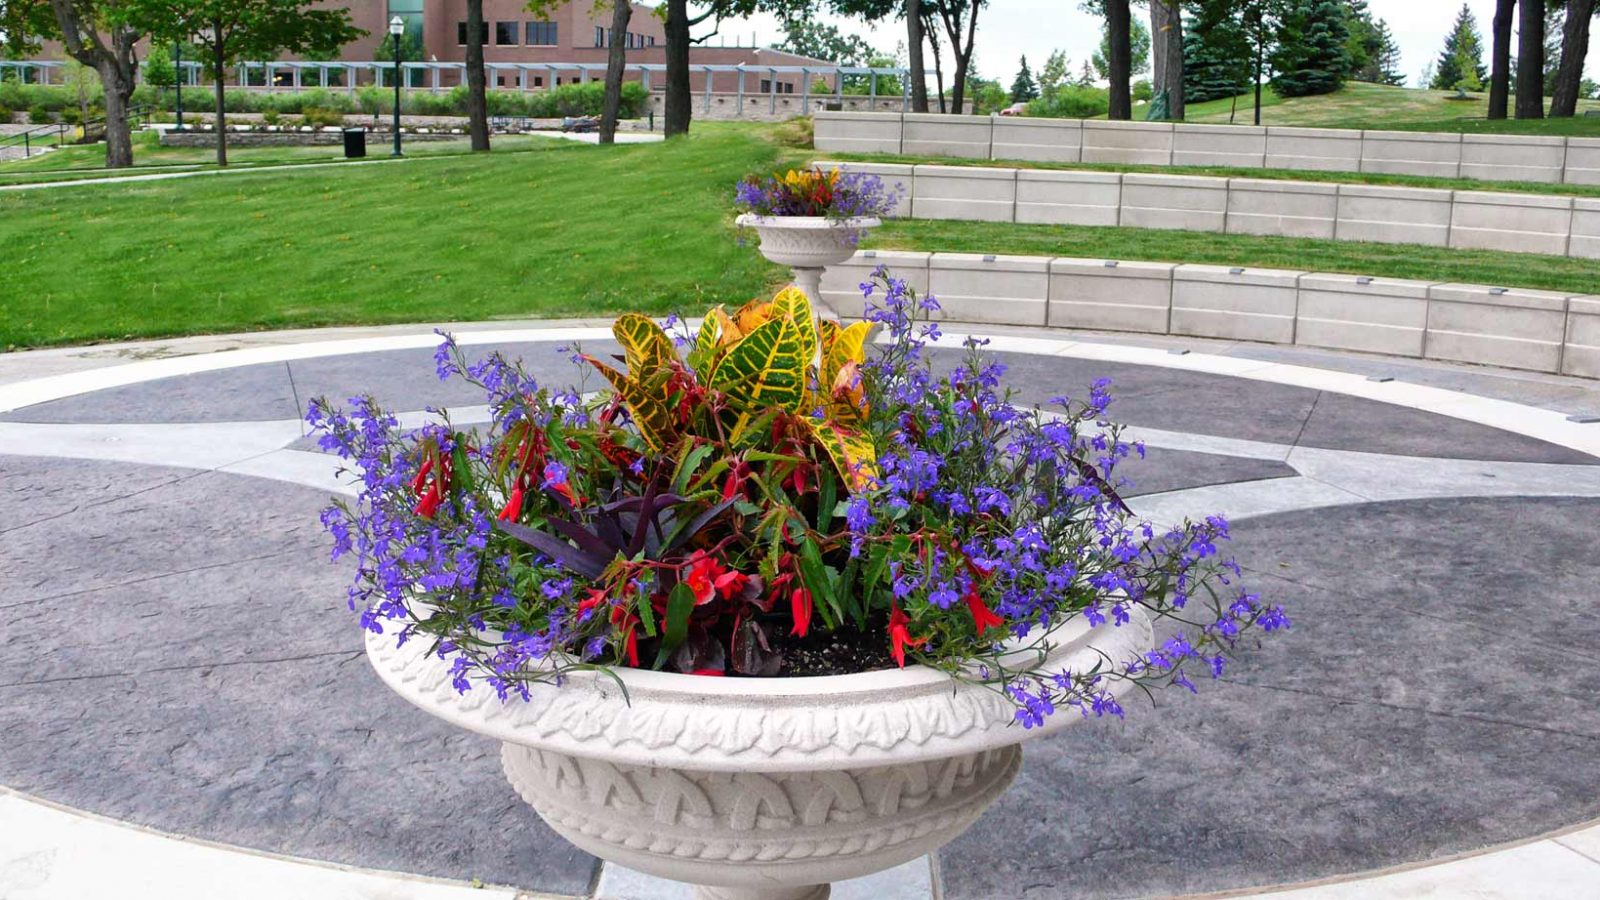 flowers in urn pose irrigation design challenges